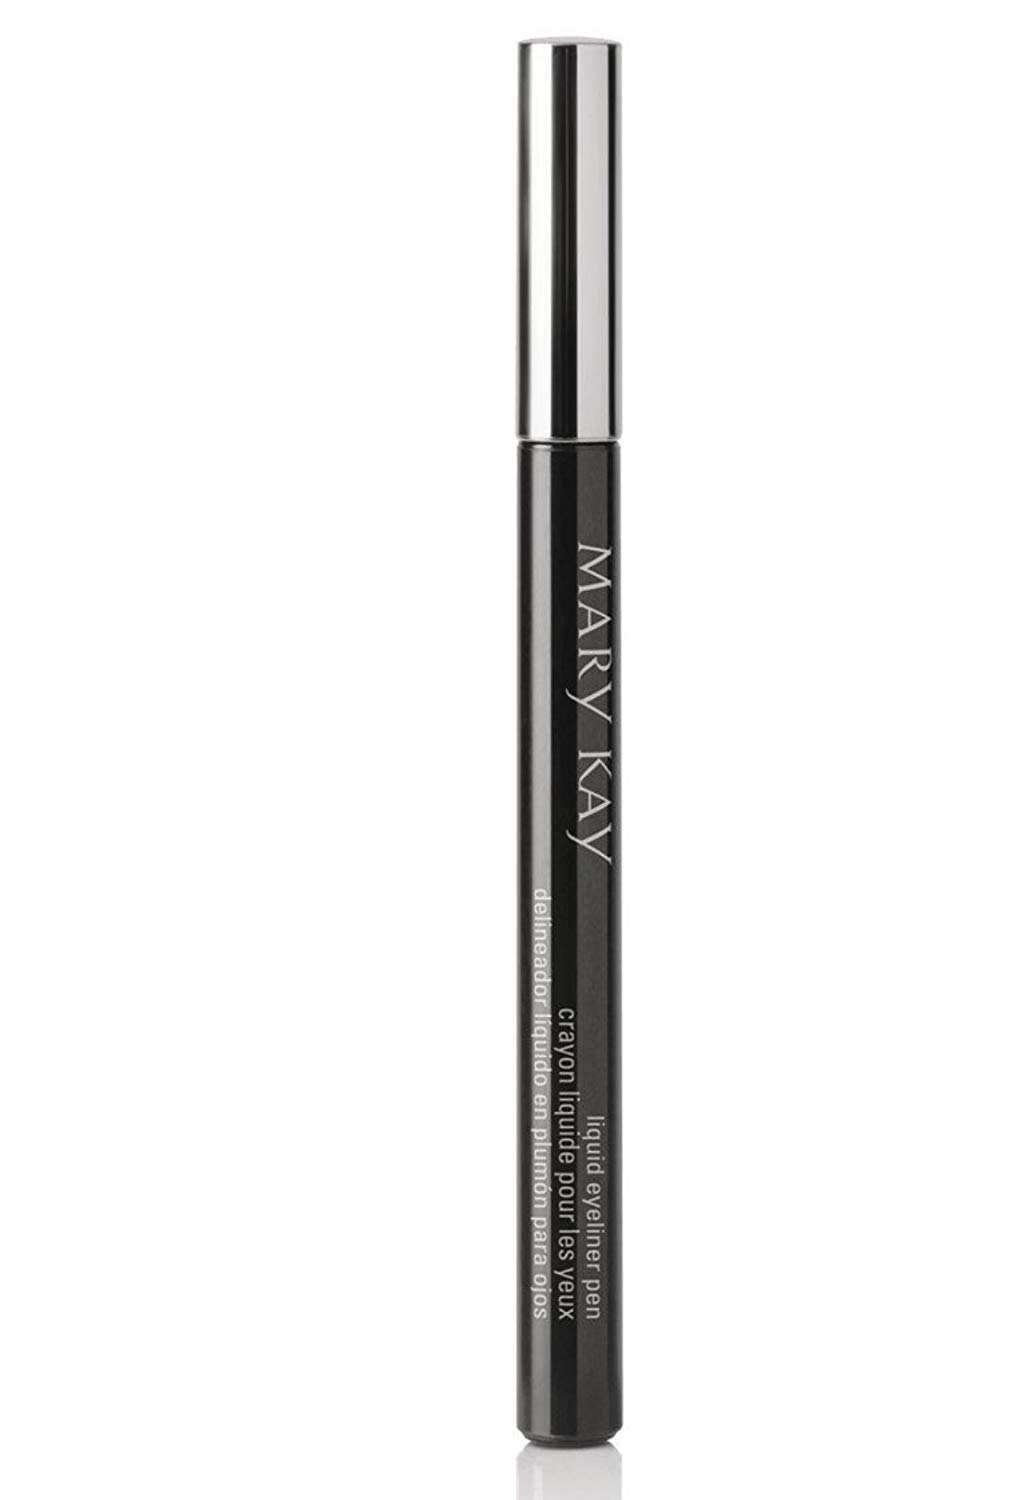 Mary Kay Liquid Eyeliner Pen .05 oz. - Black